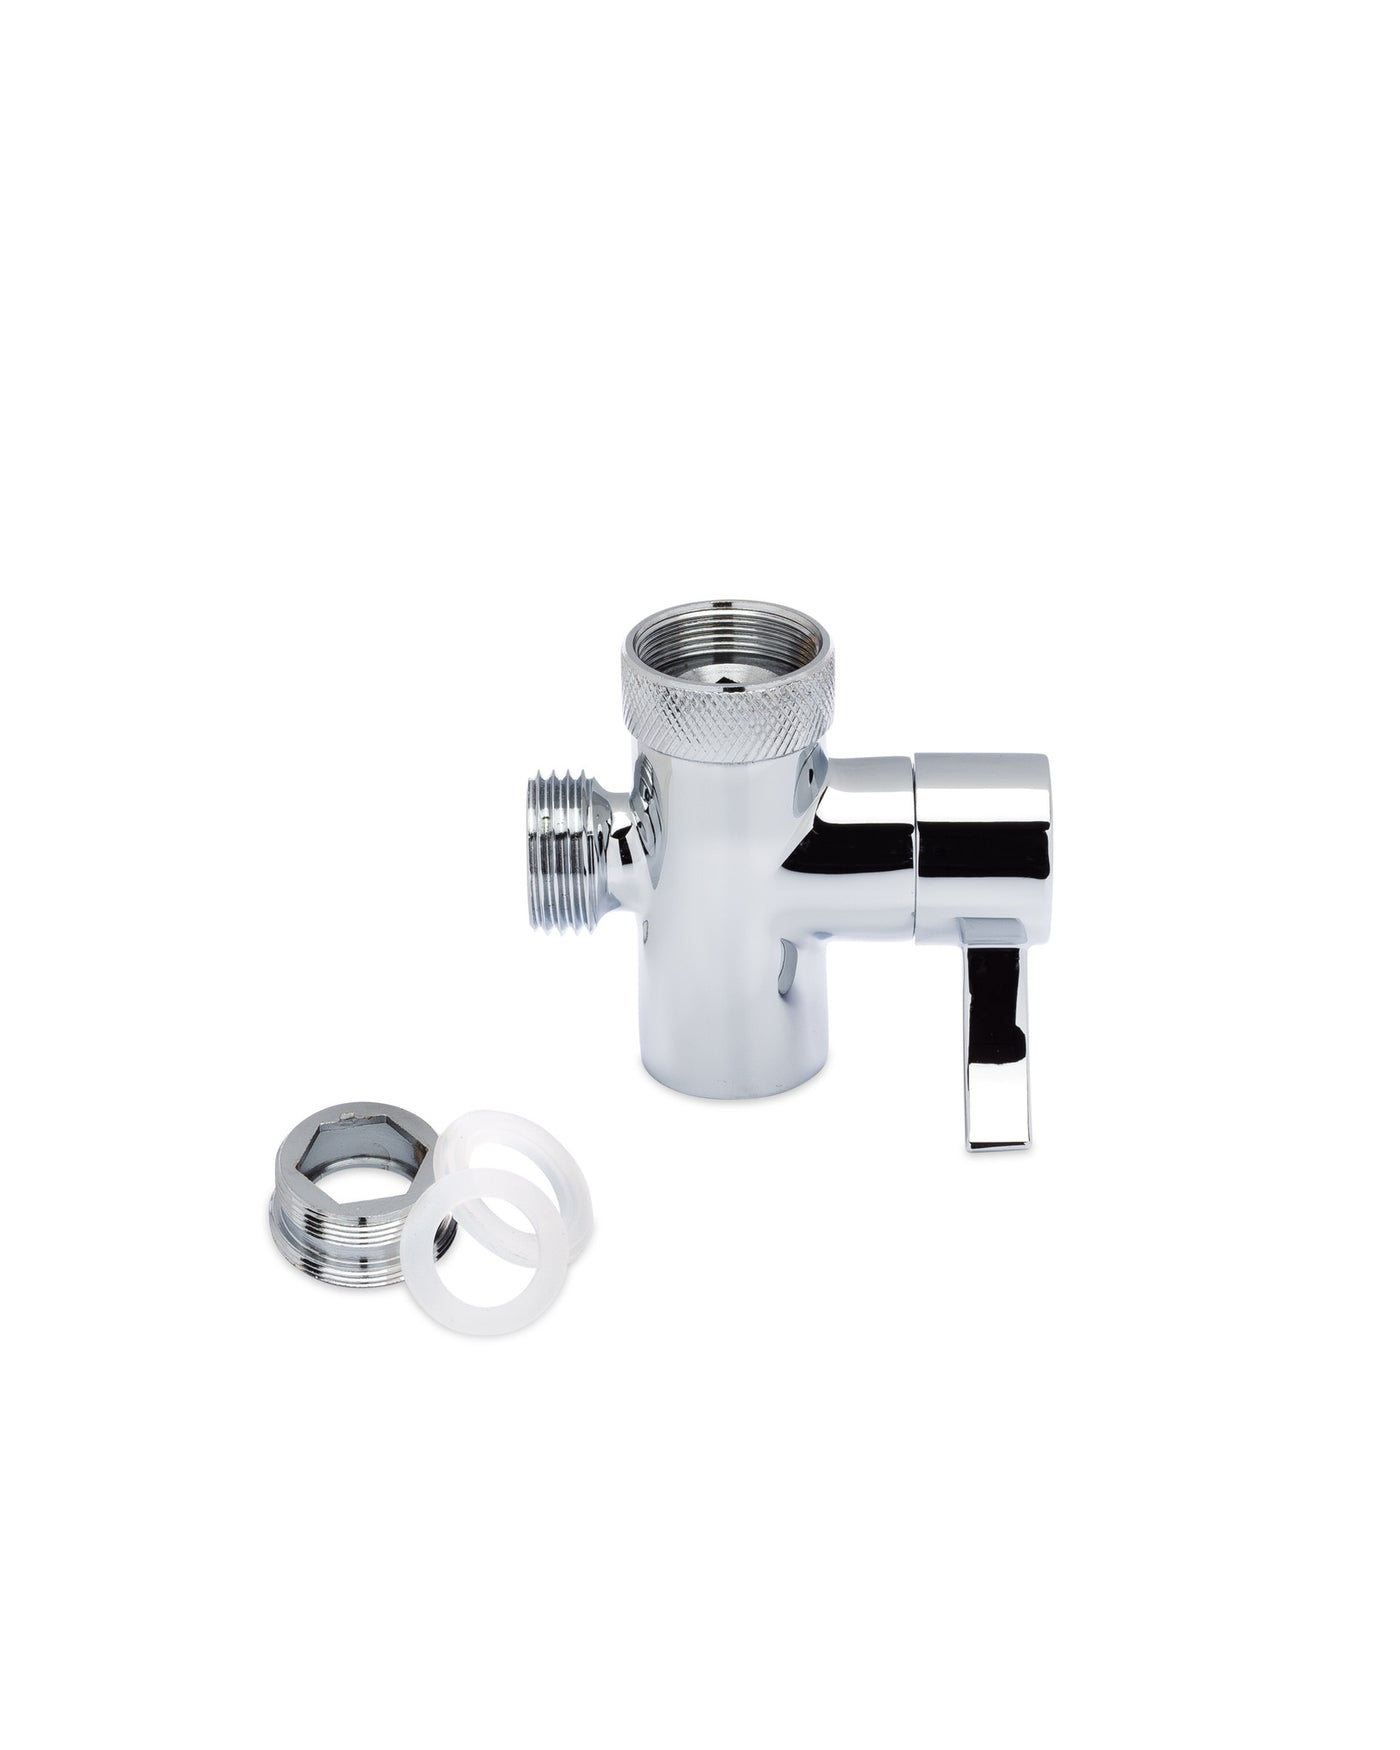 SmarterFresh Faucet Diverter Valve W/Aerator And Male Threaded Adapter